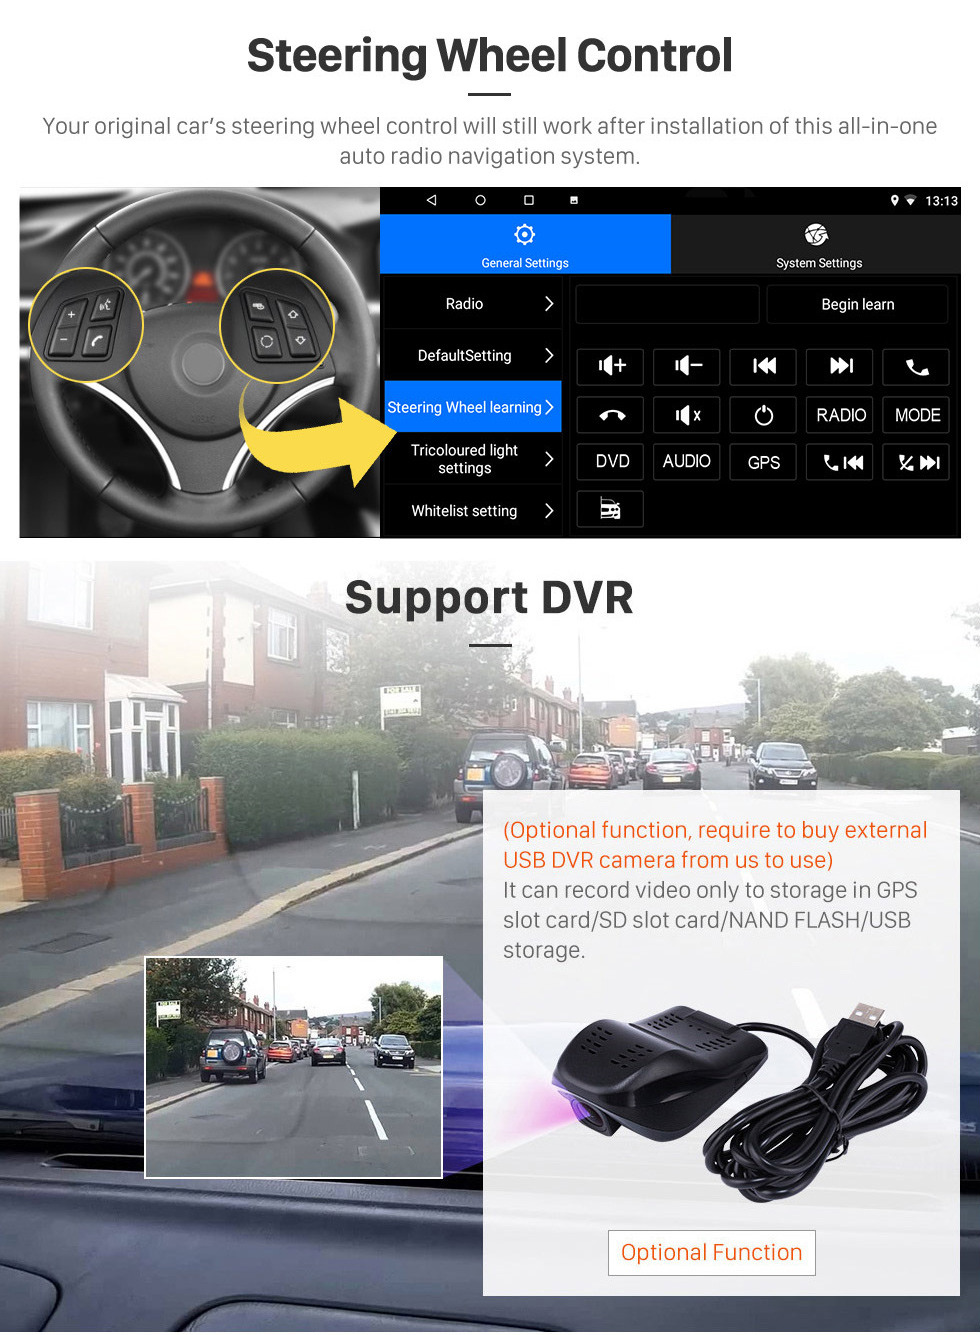 Seicane HD Touchscreen 9 inch Android 10.0 GPS Navigation Radio for 2019 Volvo S60 with Bluetooth AUX WIFI support Carplay TPMS DAB+ OBD2